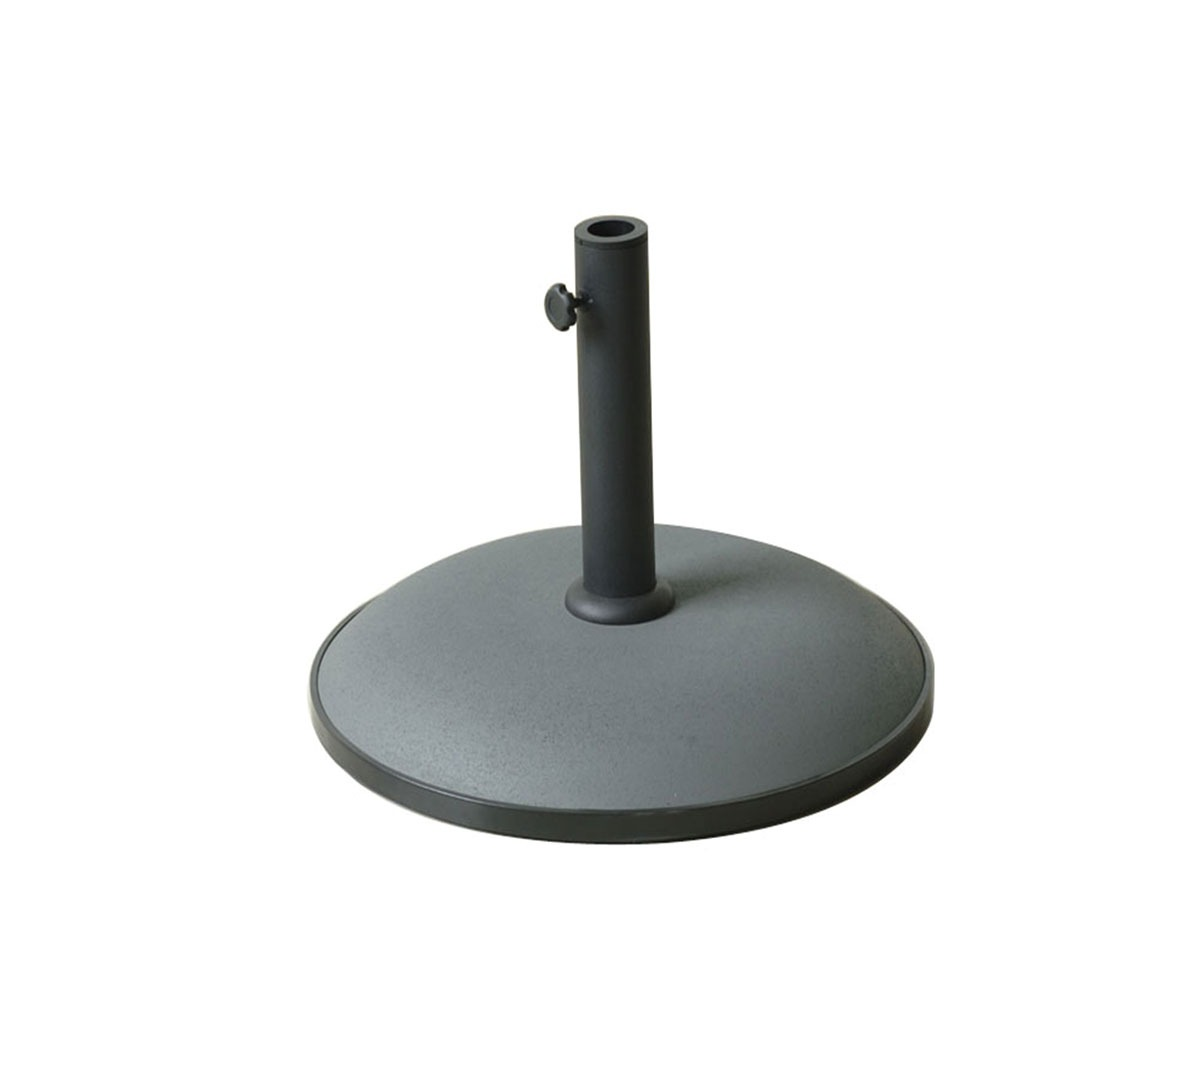 Base parasol Stone cemento color gris 25kg